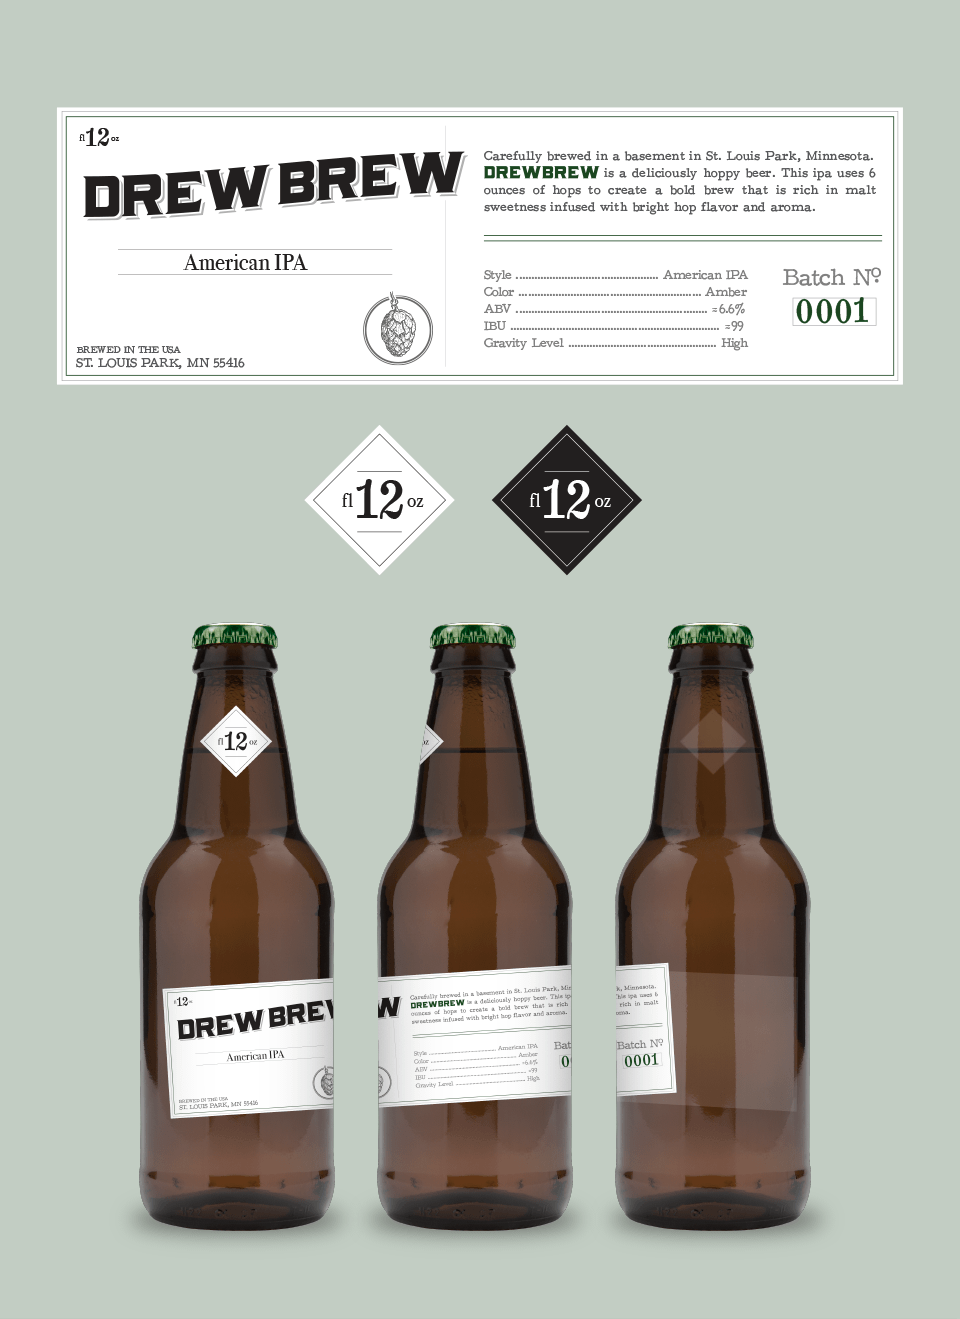 Drew Brew Label